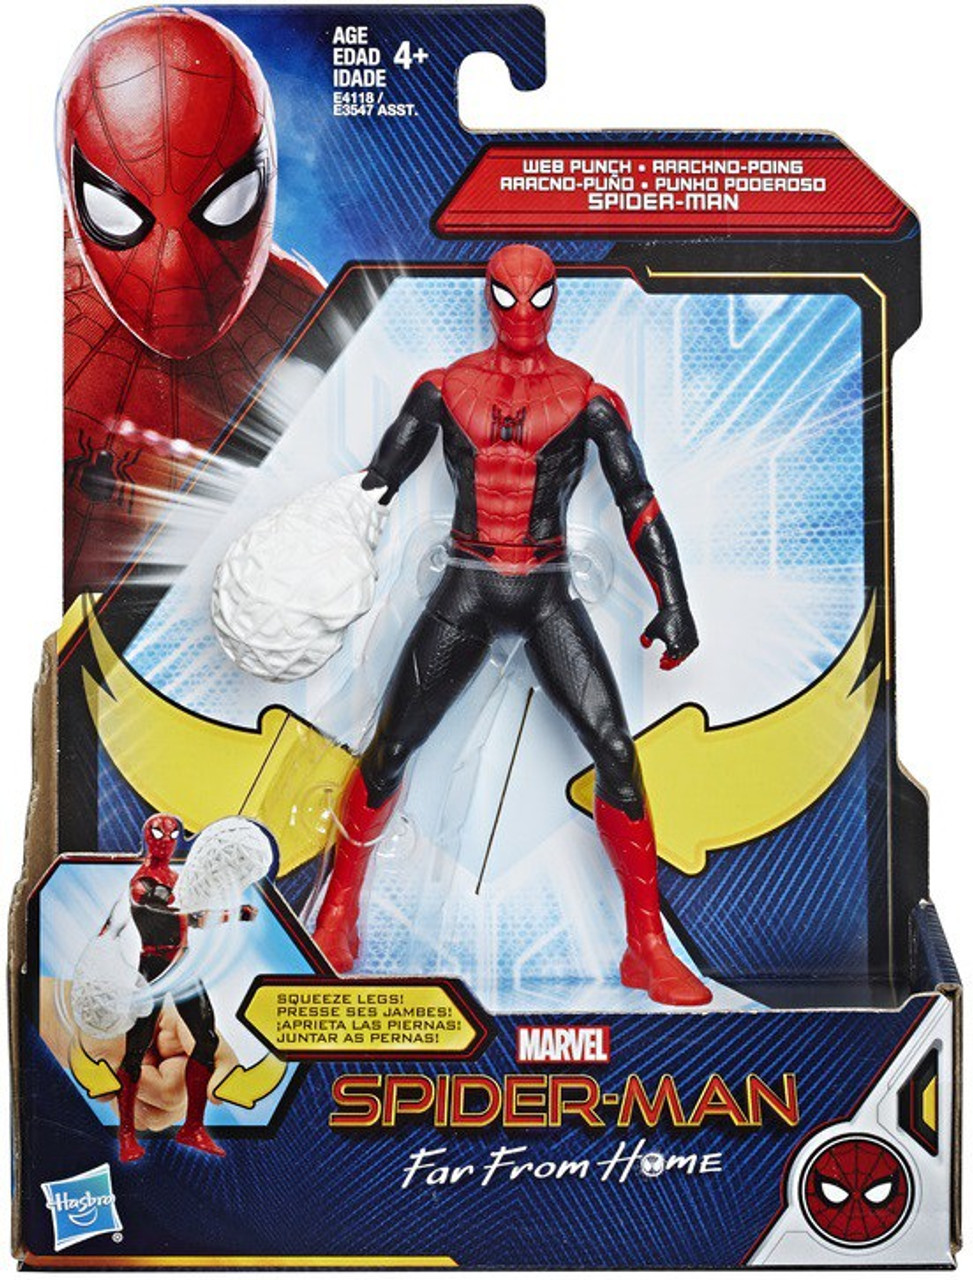 Marvel Superheroes Spiderman Far From Home Web Shield 6 New Action Figure Toy Comic Book Hero Action Figures Hero Toys